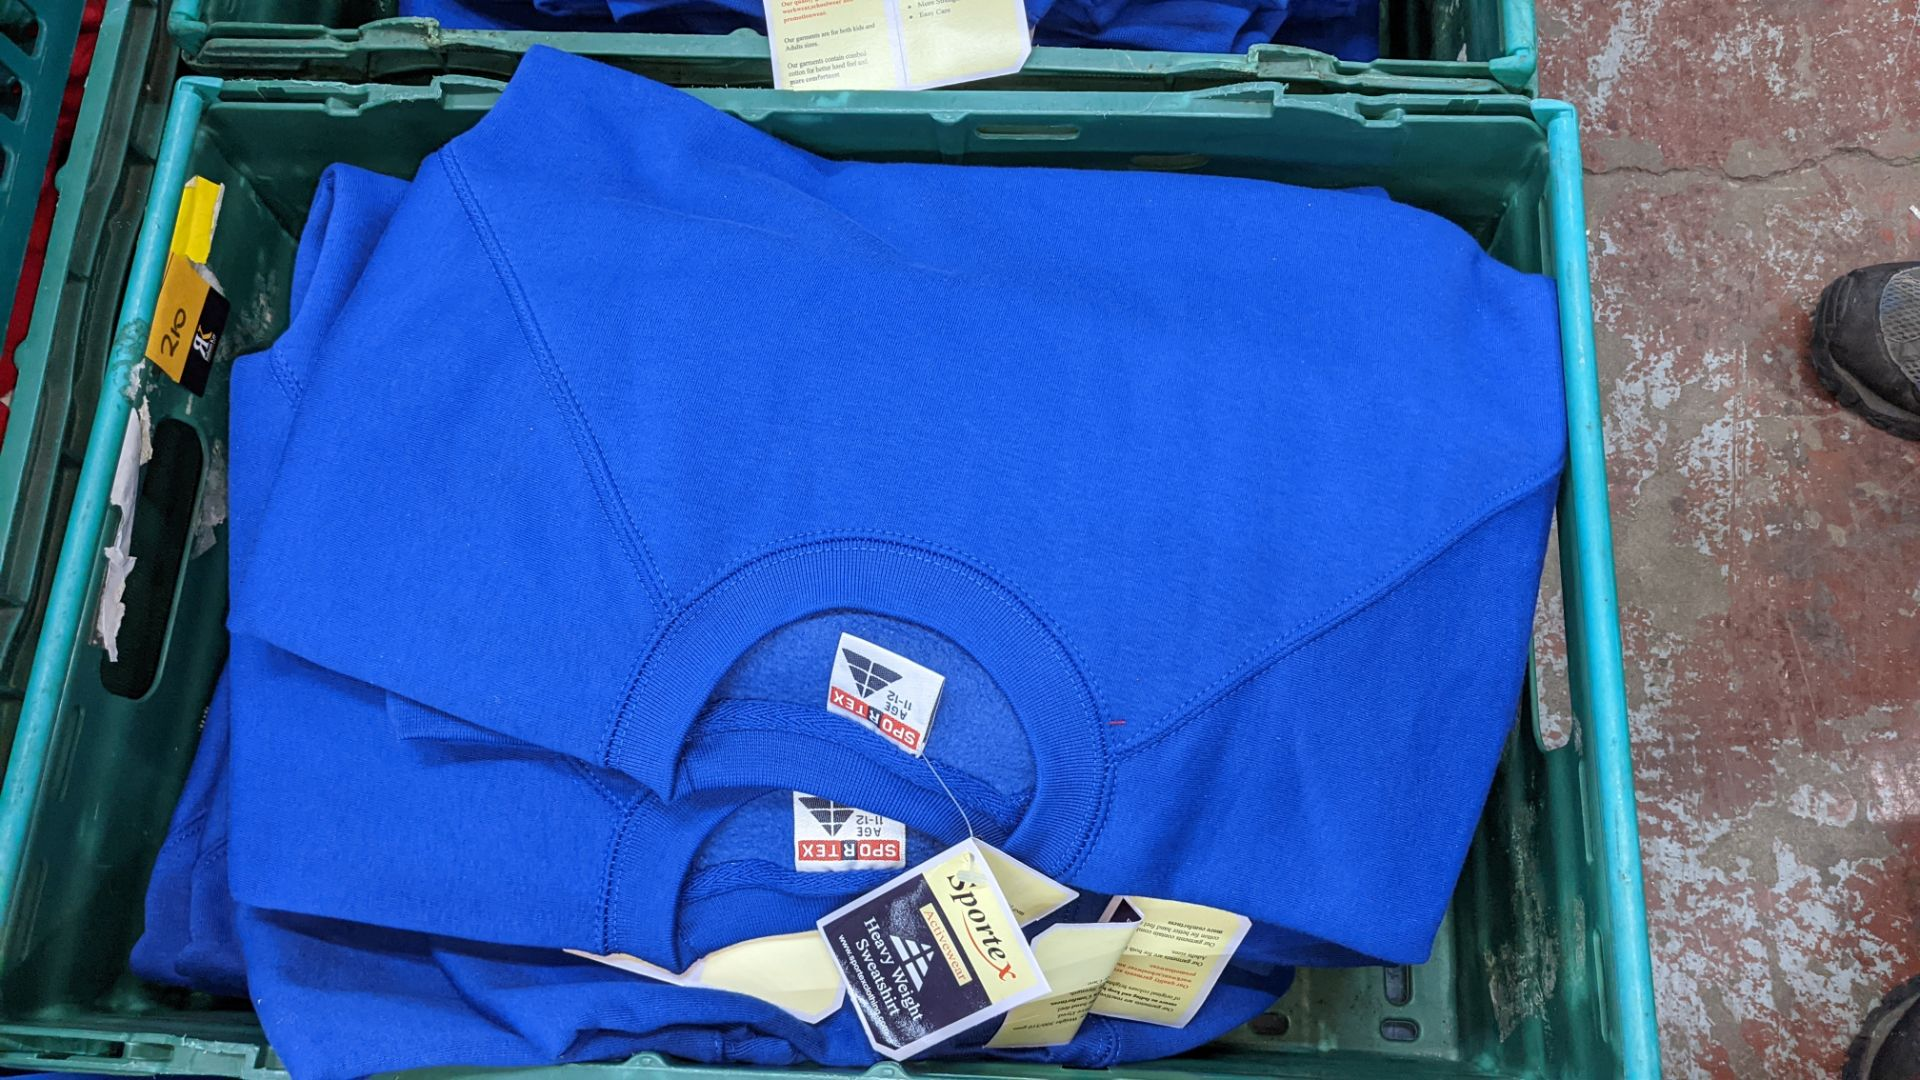 Approx 15 off Sportex children's assorted sweatshirts - the contents of 2 crates. NB crates exclude - Image 3 of 6